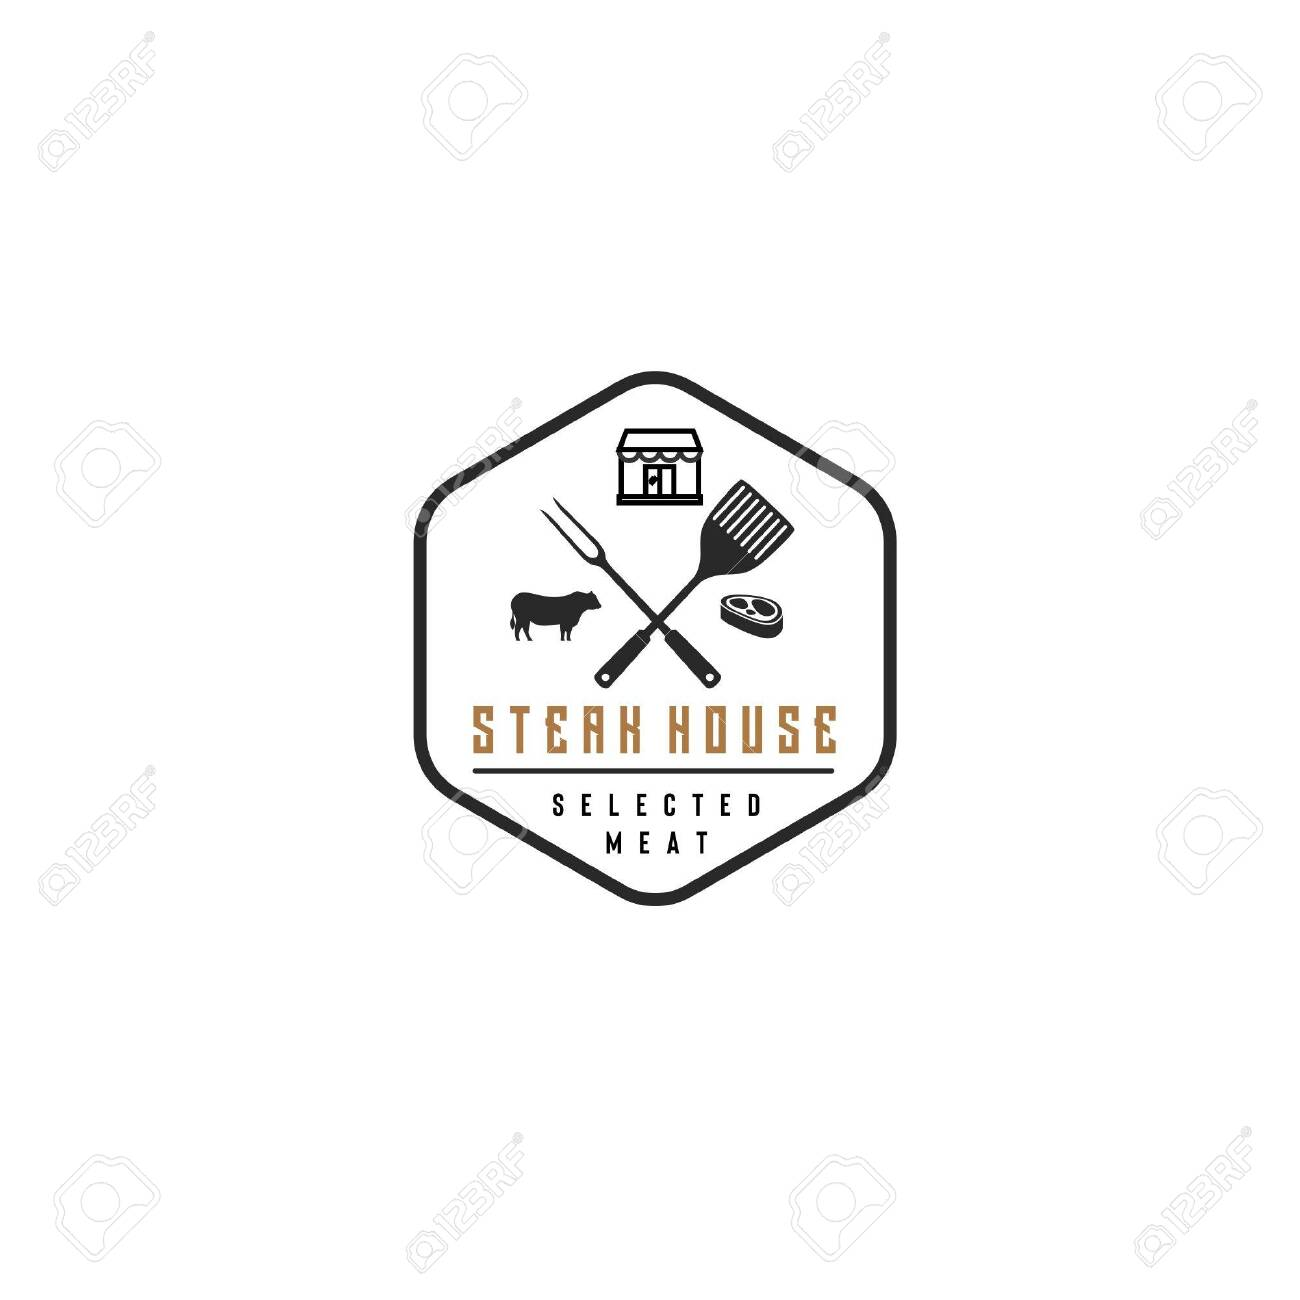 Restaurant Logo With Hexagon Frame Cow Meat Shop Fork And Royalty Free Cliparts Vectors And Stock Illustration Image 149758871